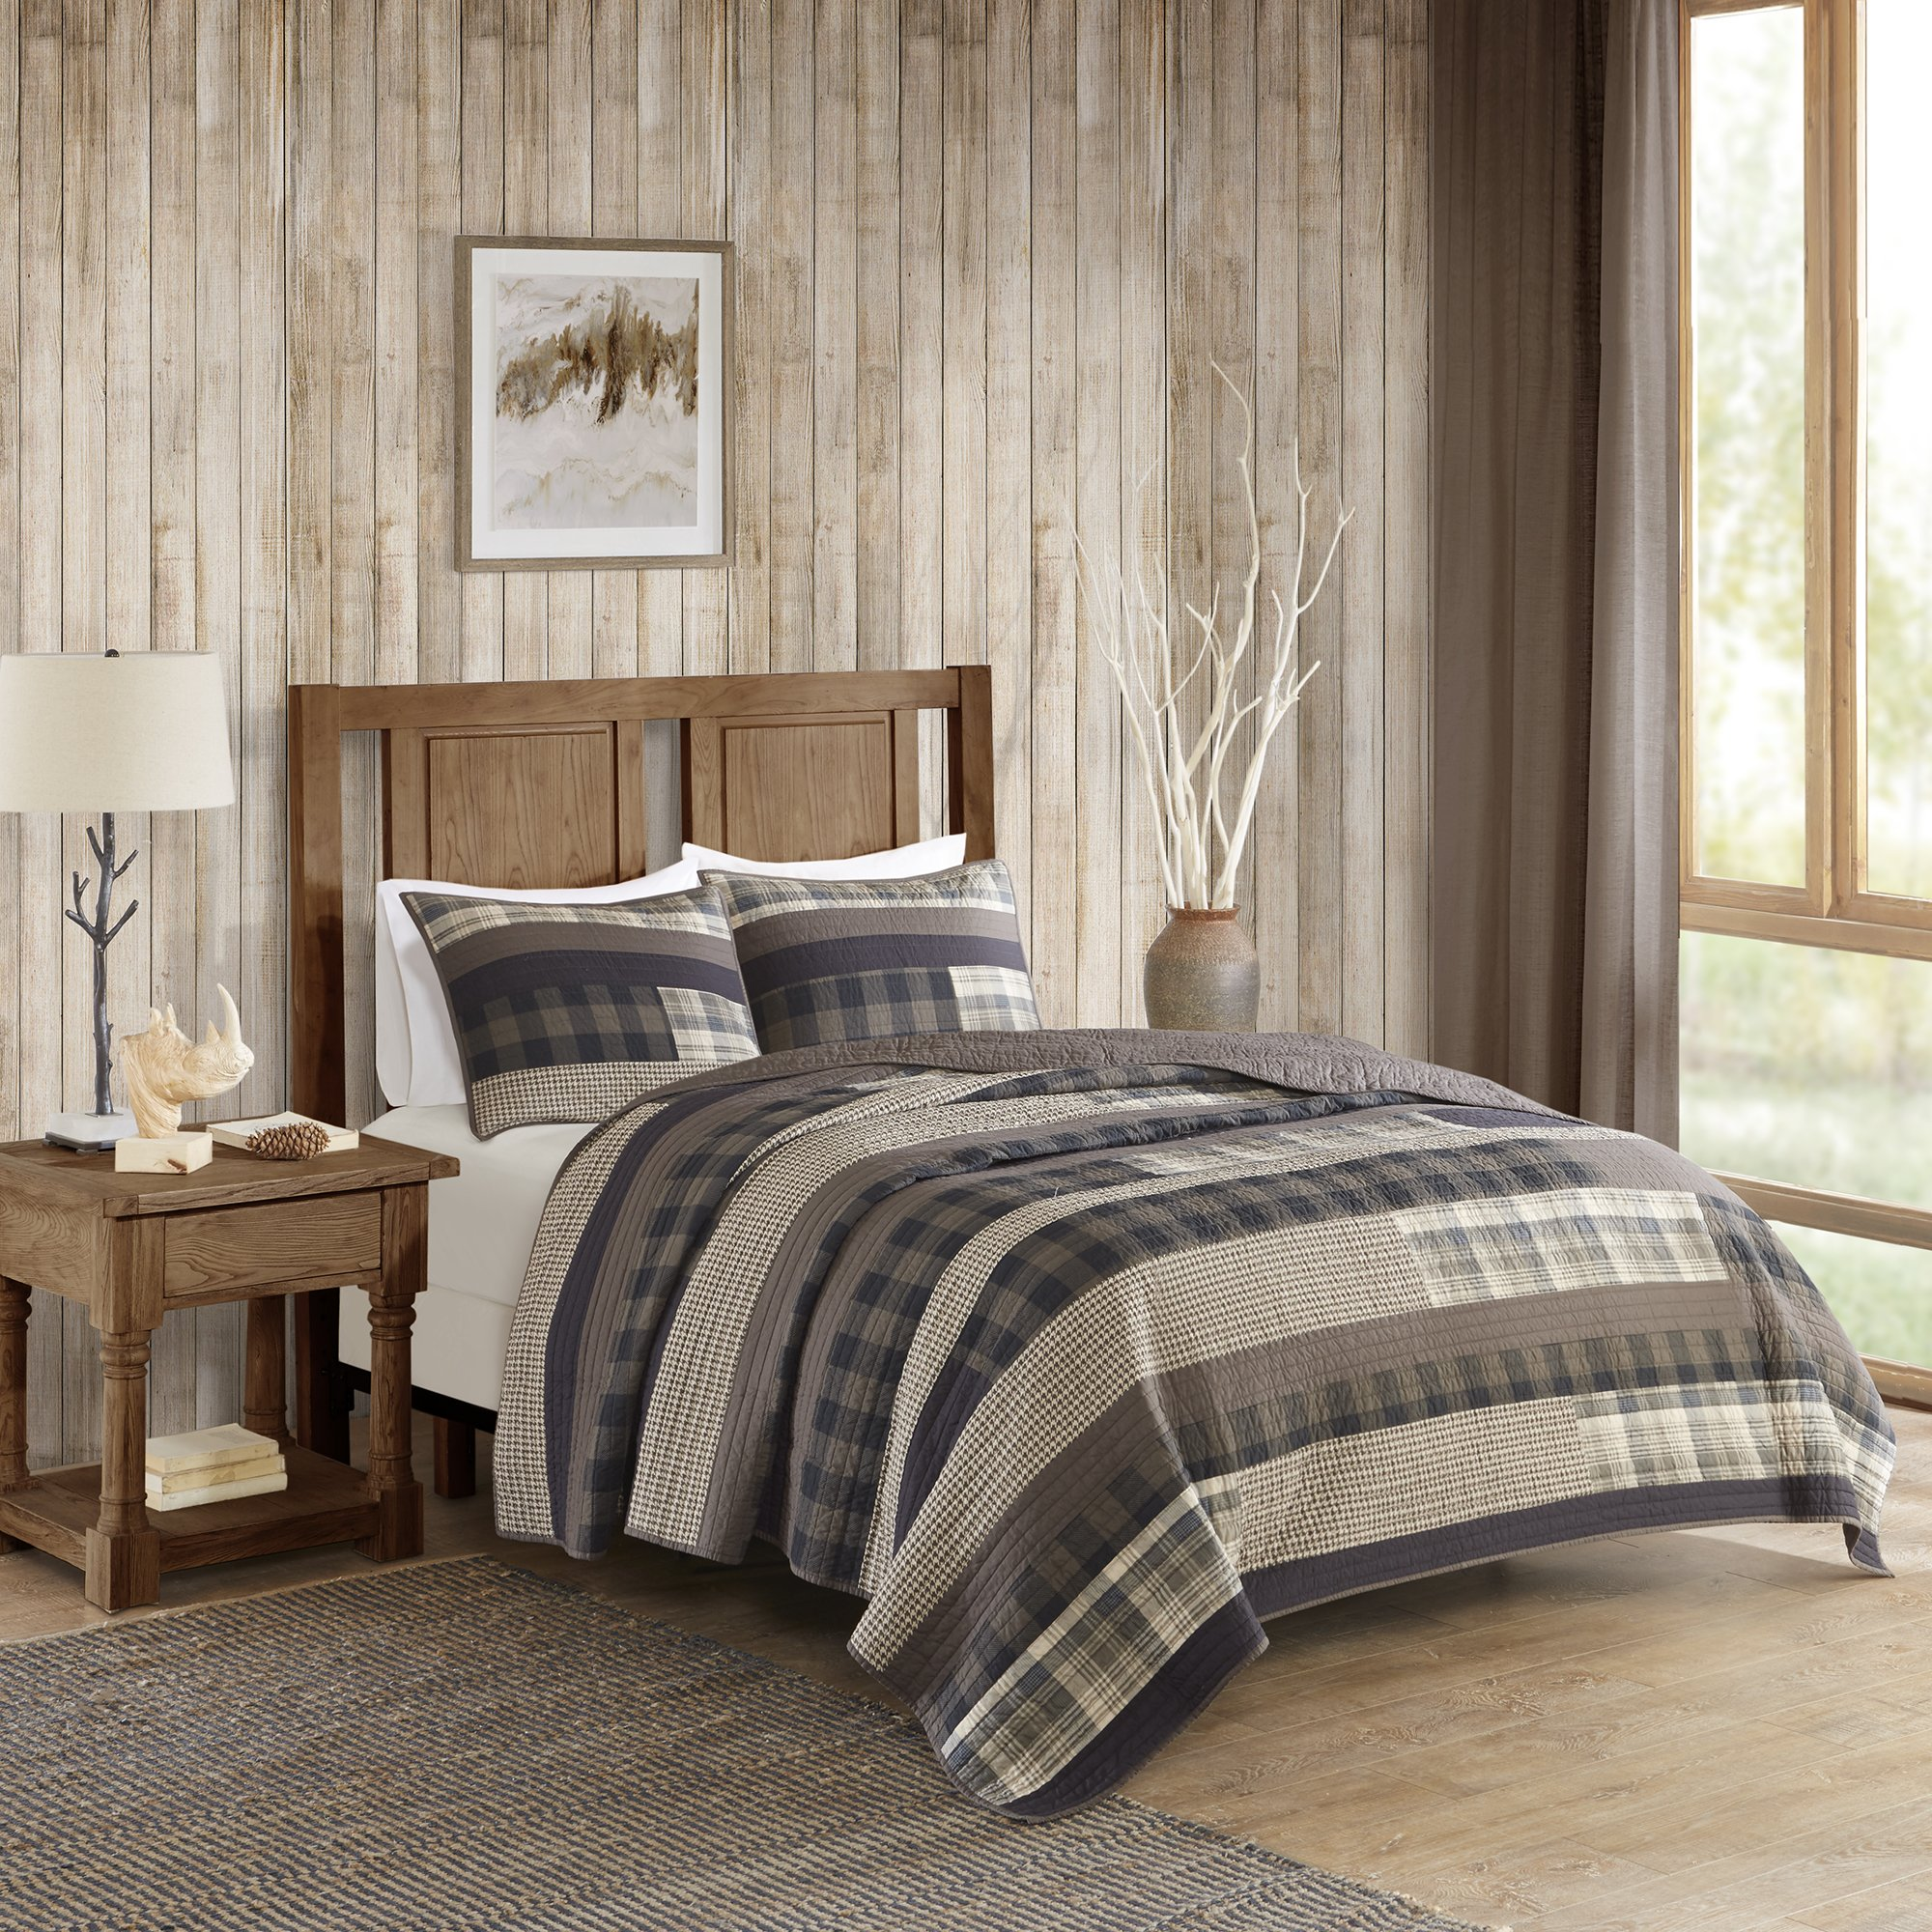 Woolrich Winter Plains Full/Queen Size Quilt Bedding Set - Grey Taupe, Plaid – 3 Piece Bedding Quilt Coverlets – Cotton Bed Quilts Quilted Coverlet